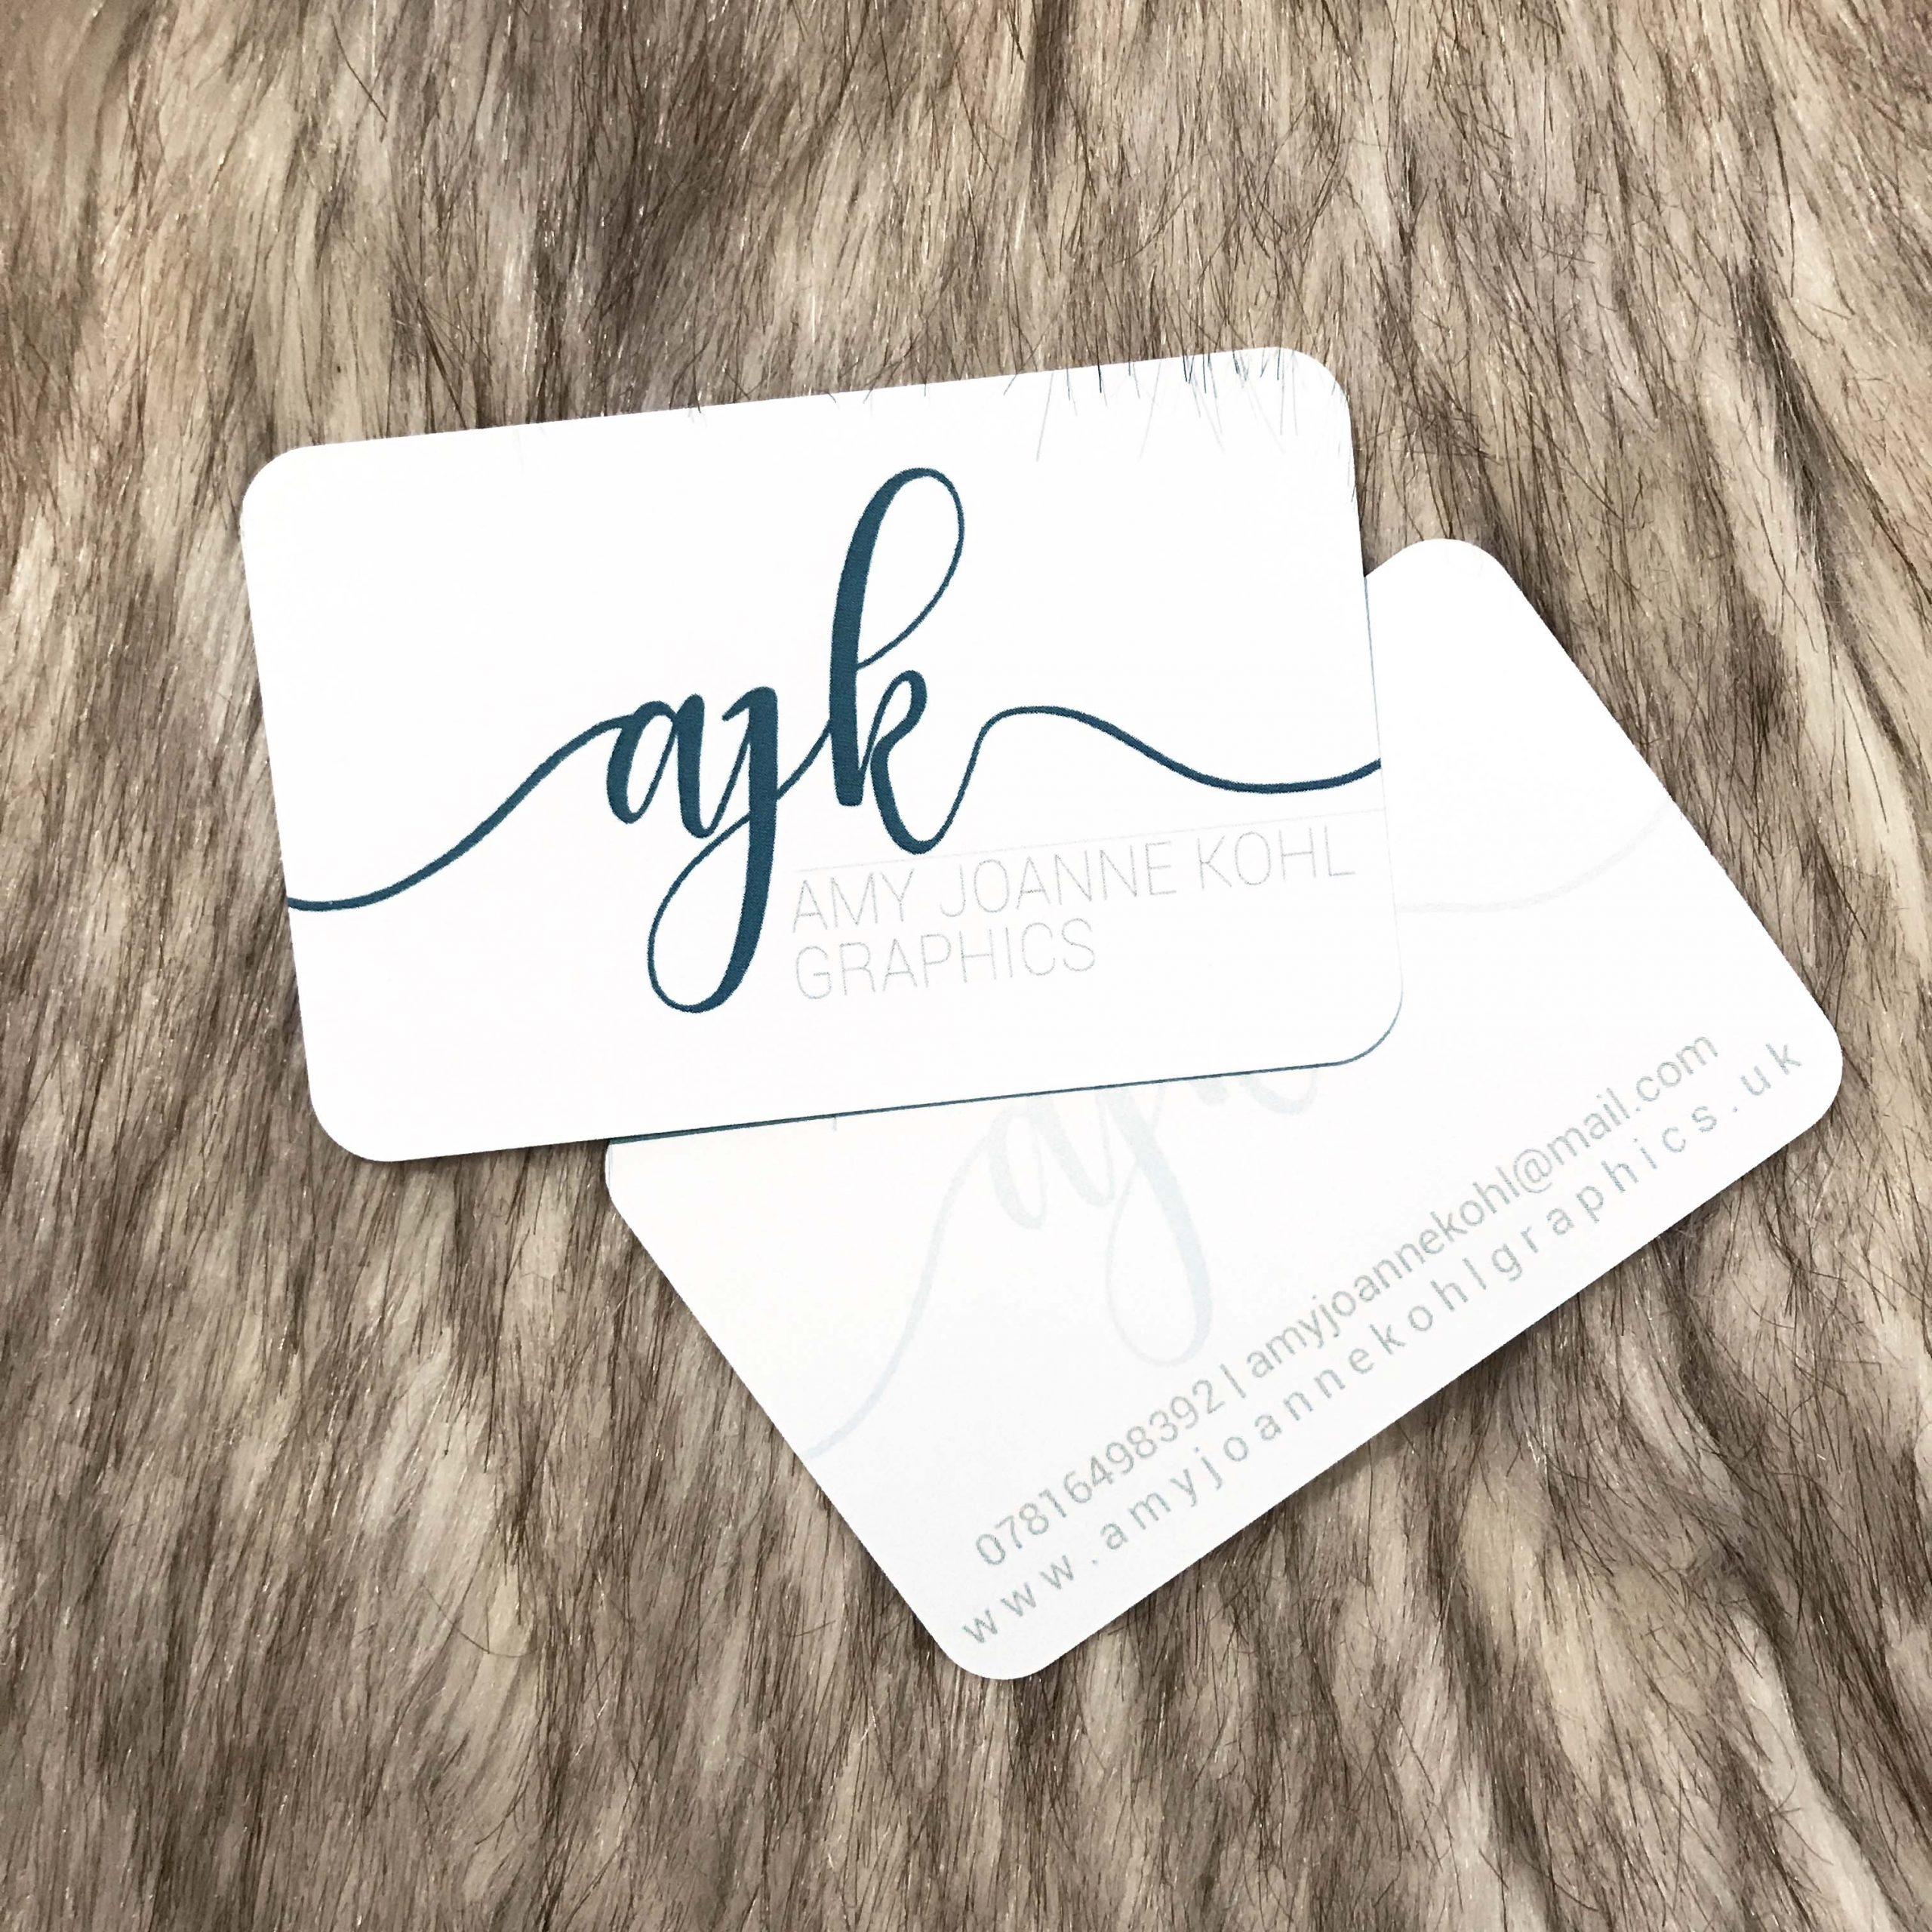 Amy Joanne Kohl Graphics Business Cards Image